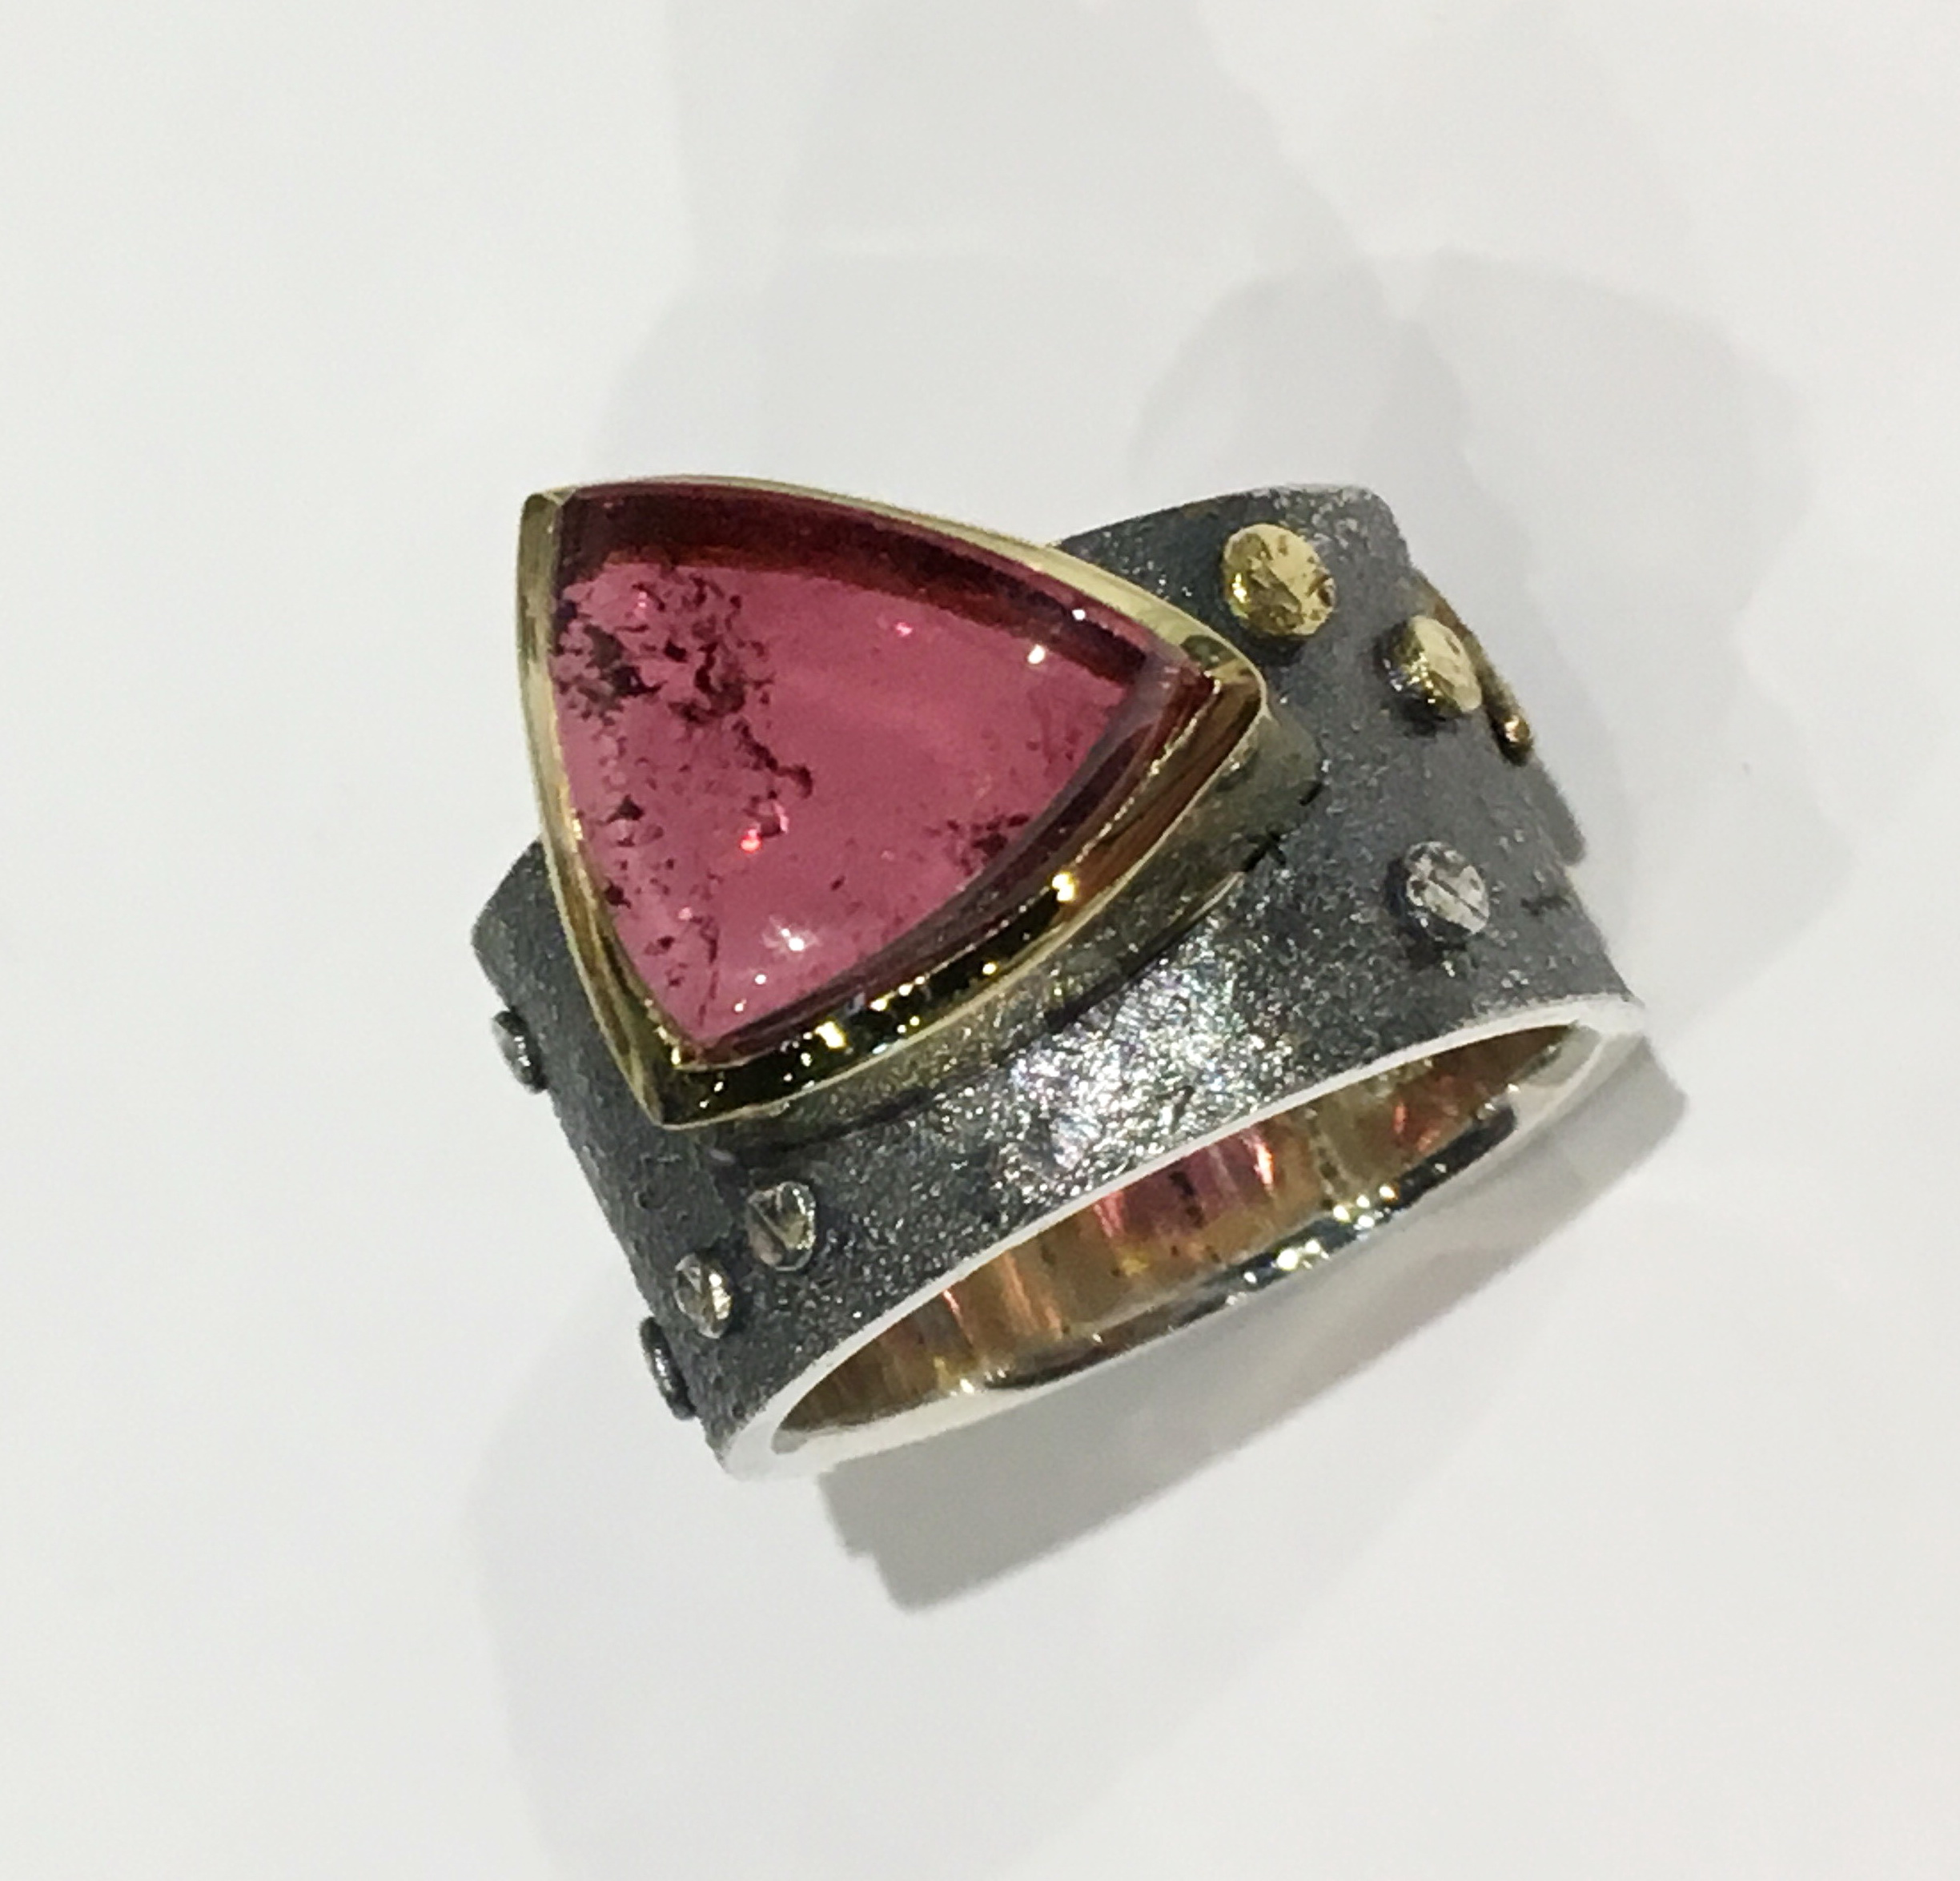 Sterling Silver & 18kt. Yellow Gold Ring with Pink Tourmaline by Dietje Hagedoorn at The Avenue Gallery, a contemporary fine art gallery in Victoria, BC, Canada.